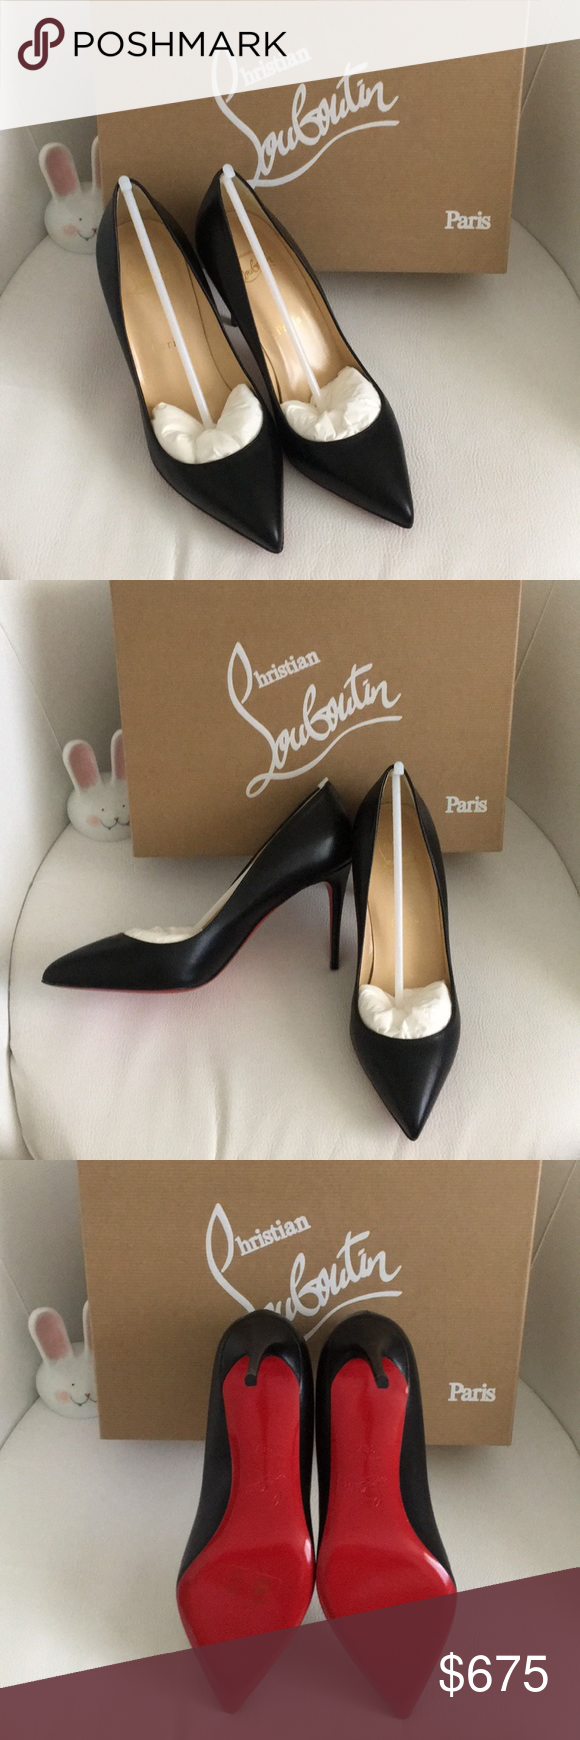 buy online 17a7e 85783 Christian Louboutin Pigalle Follies 85 Nappa Shiny New in ...